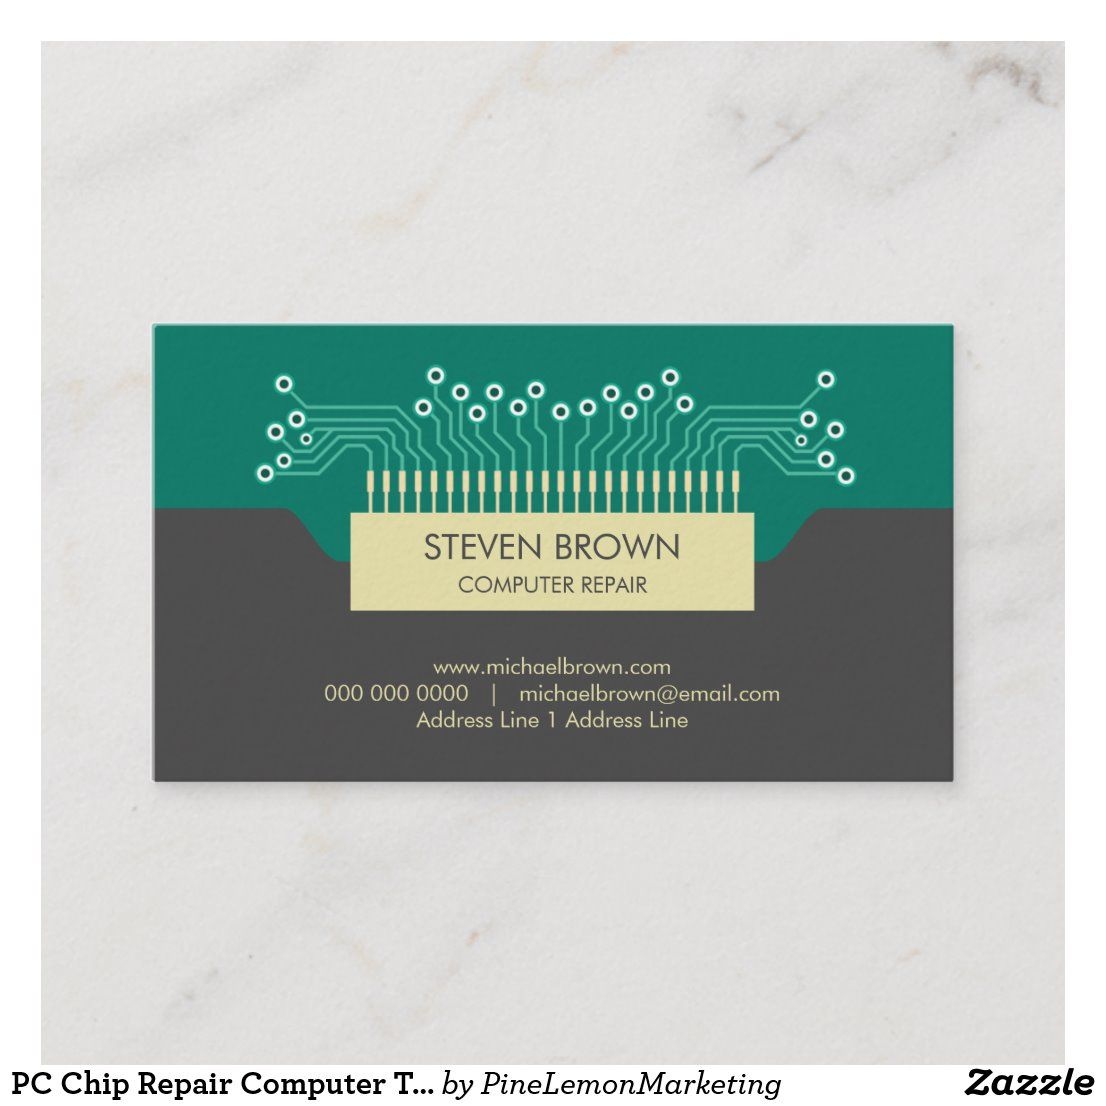 Pc Chip Repair Computer Technician Business Card Zazzle Com Repair Technician Computer Repair